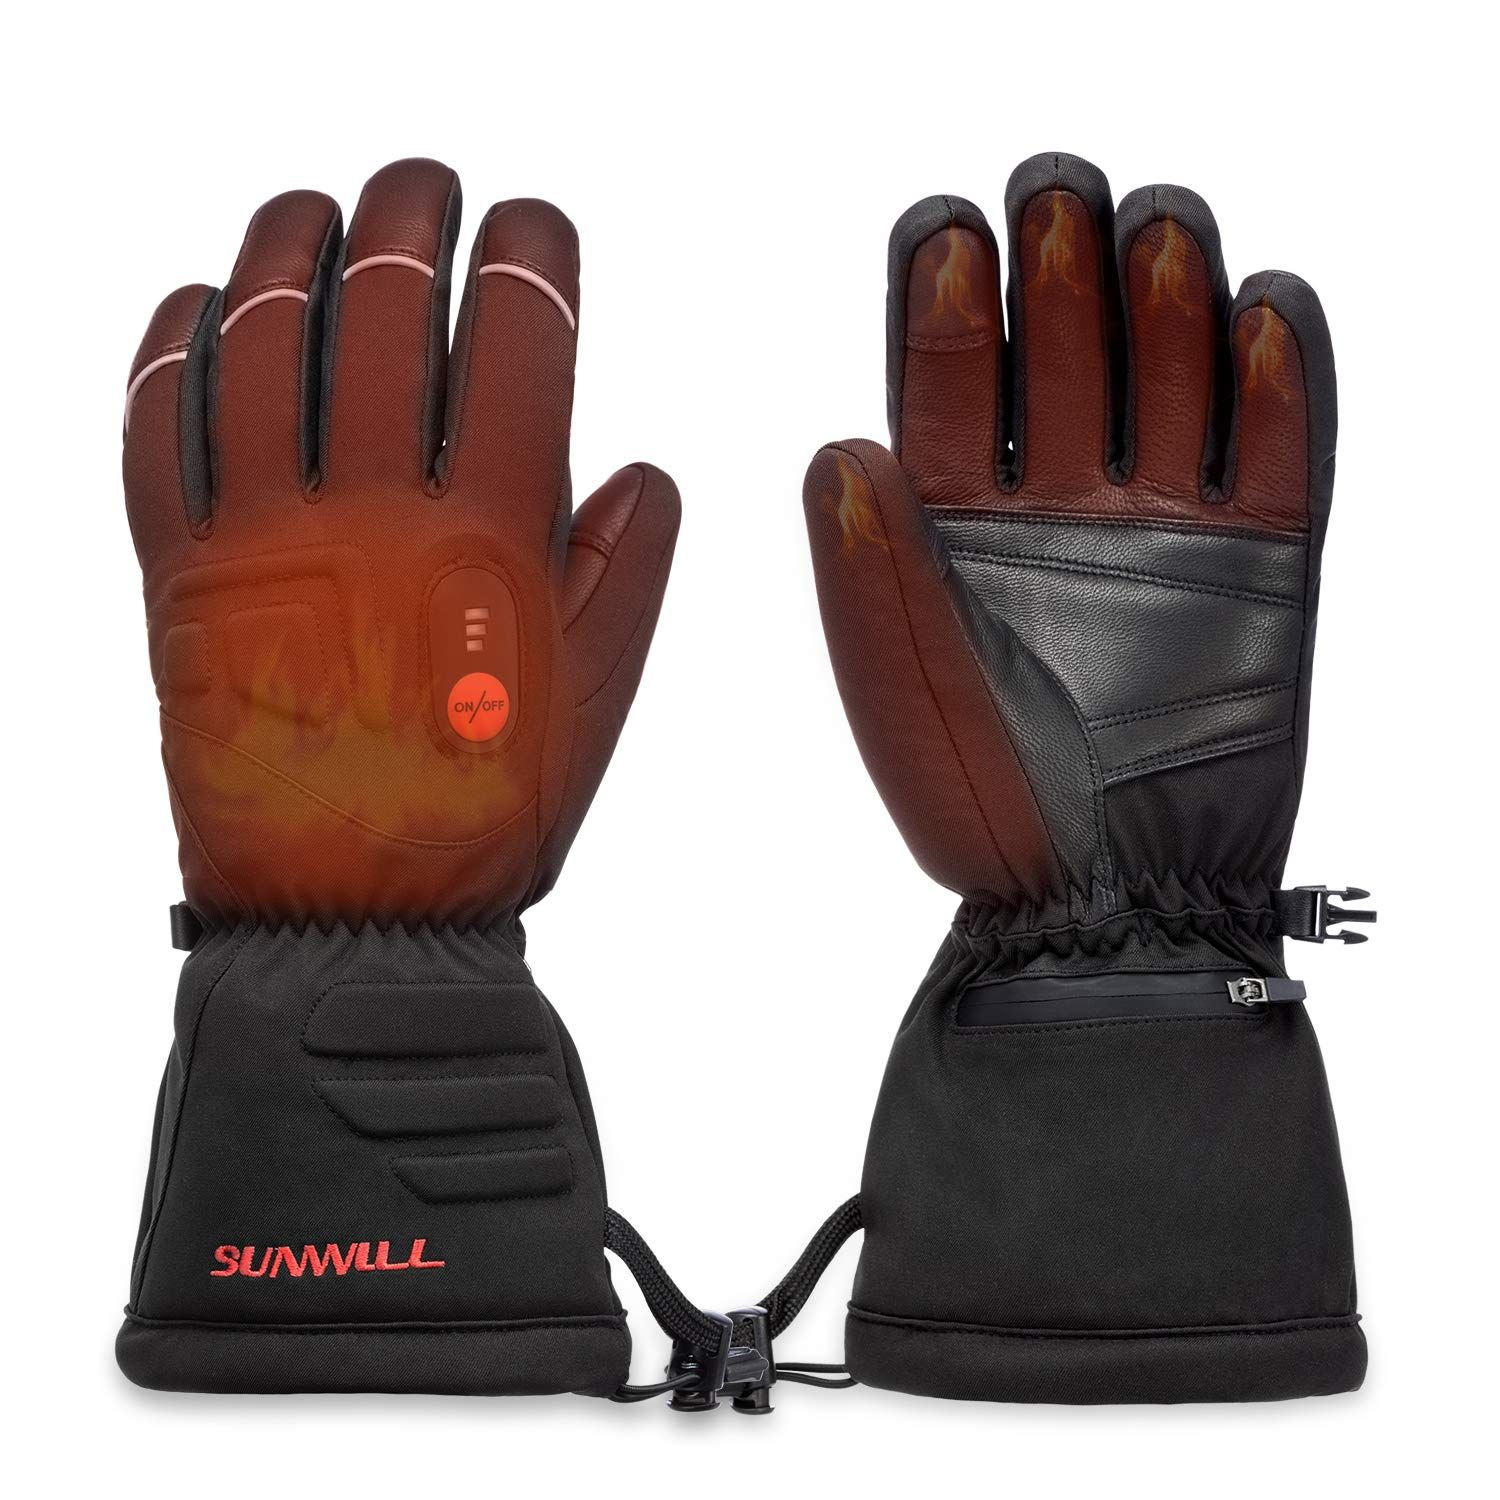 Sun Will Heated Gloves For Men Women Electric Rechargeable Ski Motorcycle Cycling Mountaineering Warm Gloves Arthritis In 2020 Heated Gloves Winter Mittens Warm Gloves